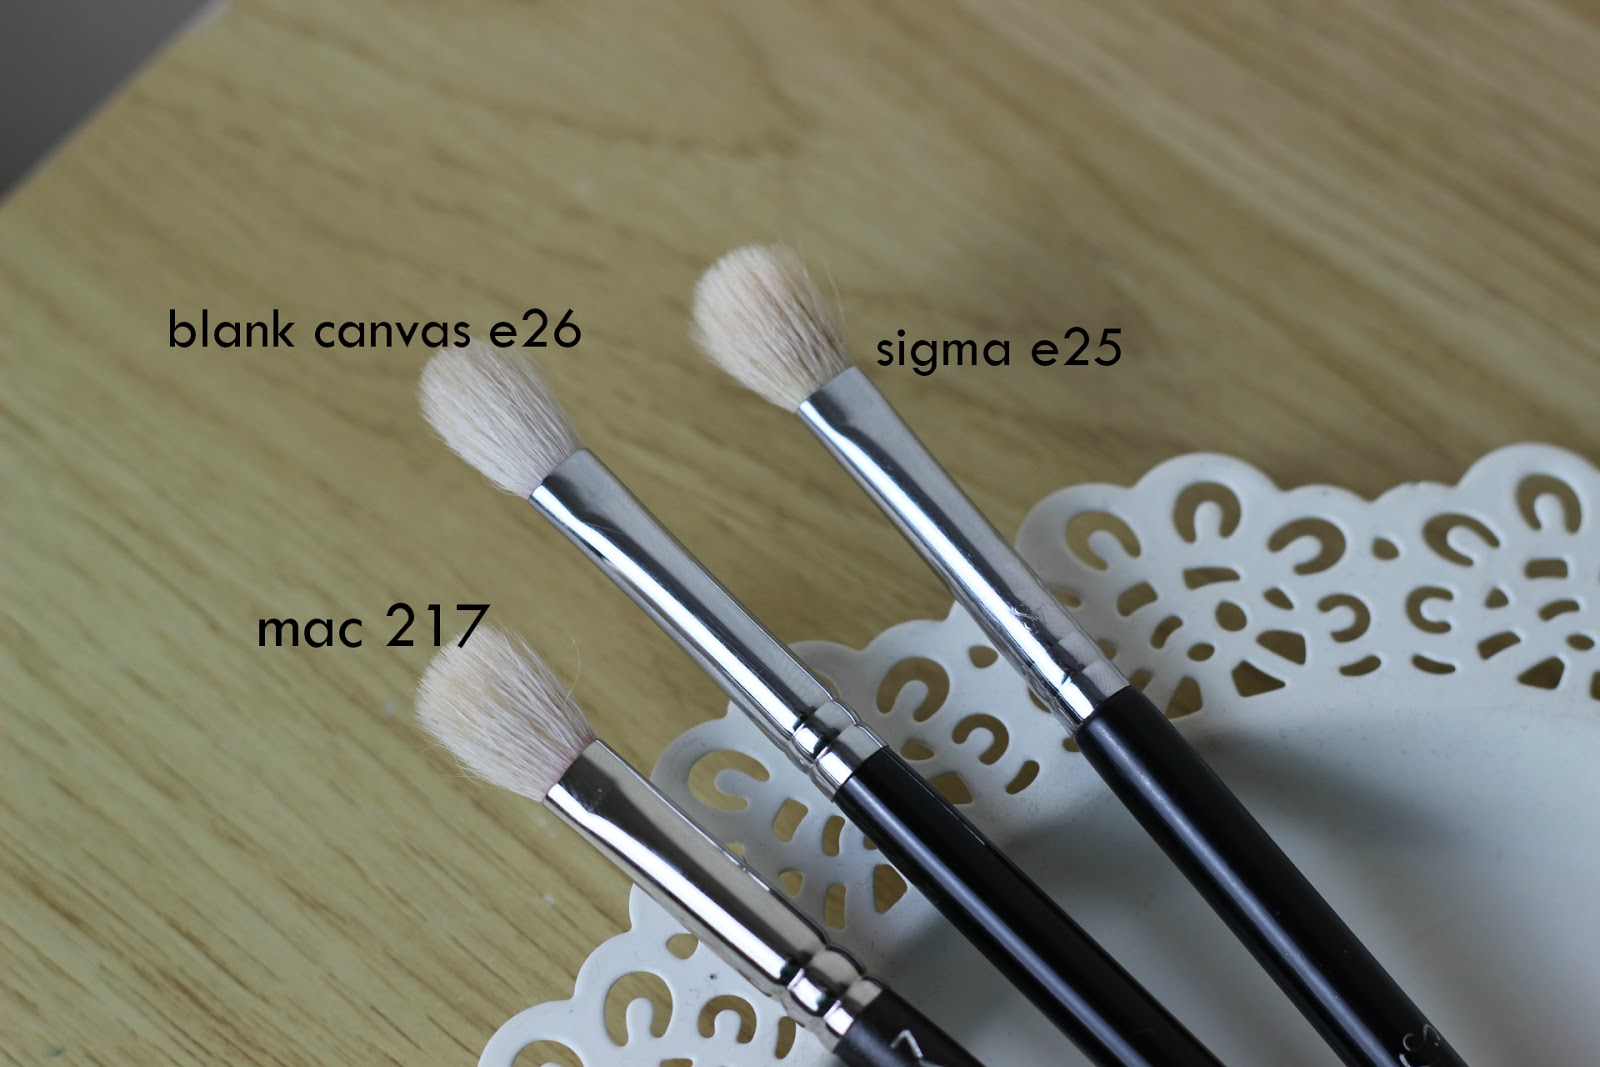 Mac 217 Brush- Are There Any Dupes?